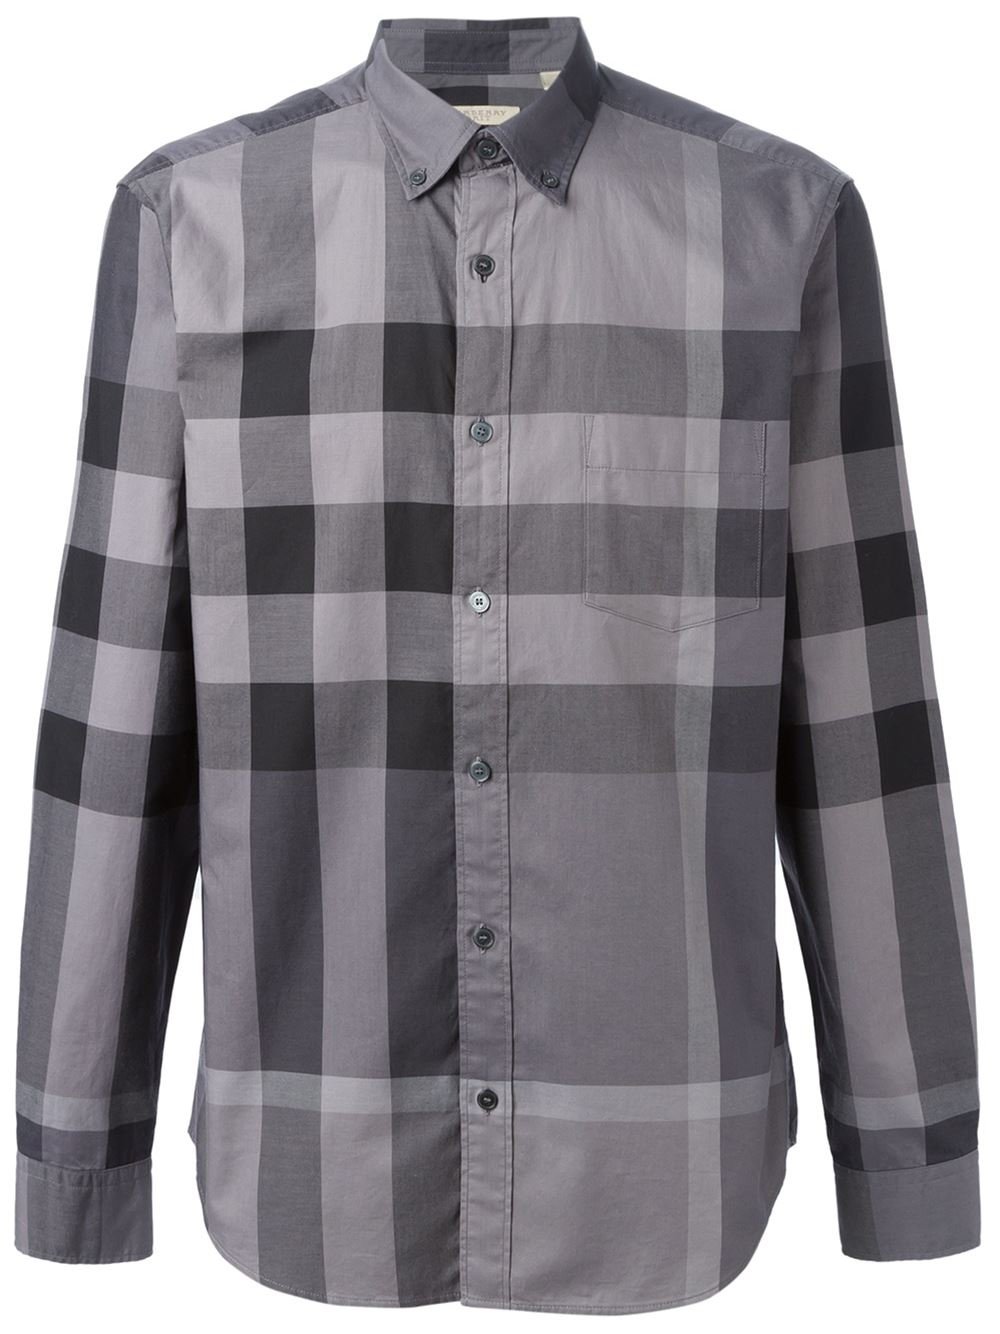 Burberry 39 fred 39 shirt in gray for men lyst for Where are burberry shirts made